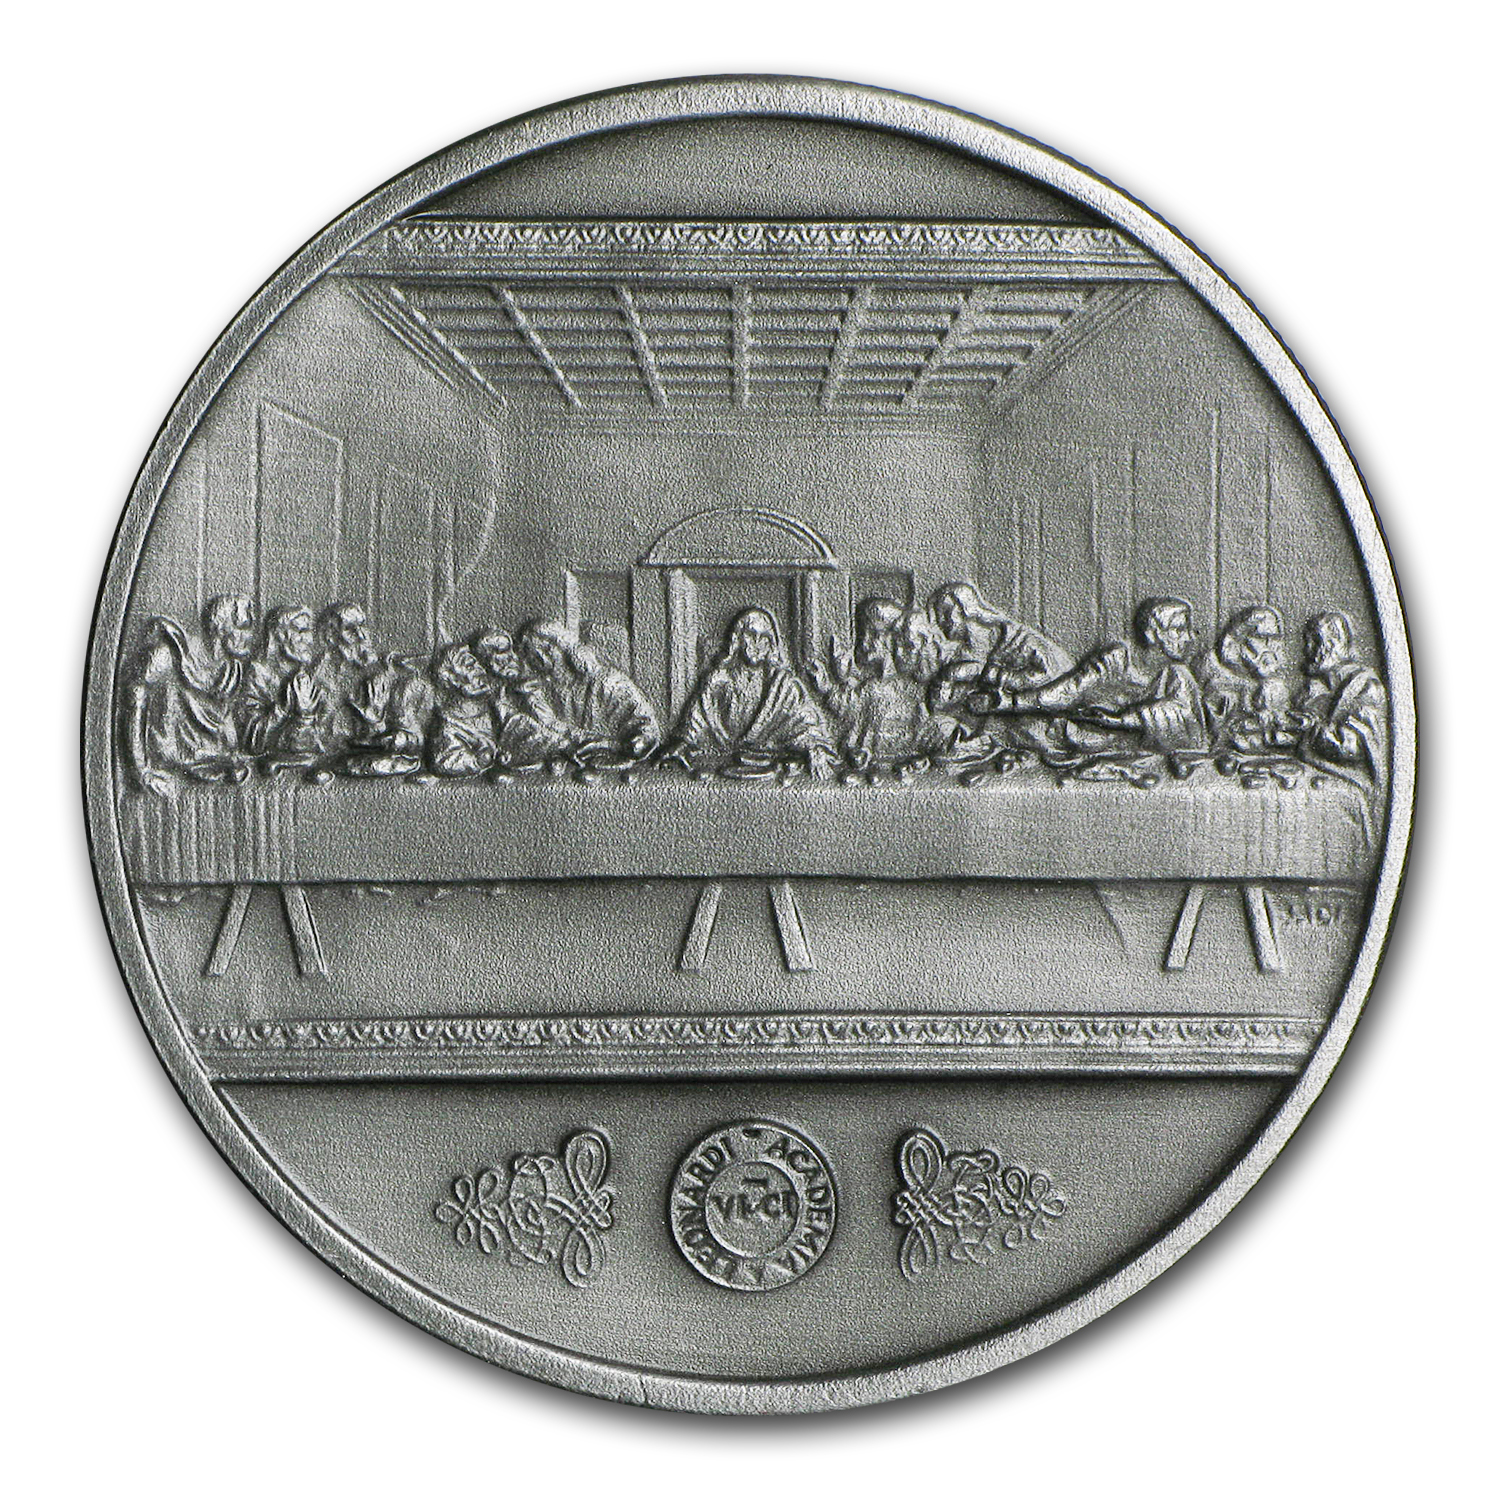 1 oz Silver Antiqued Round - Leonardo Da Vinci: The Last Supper